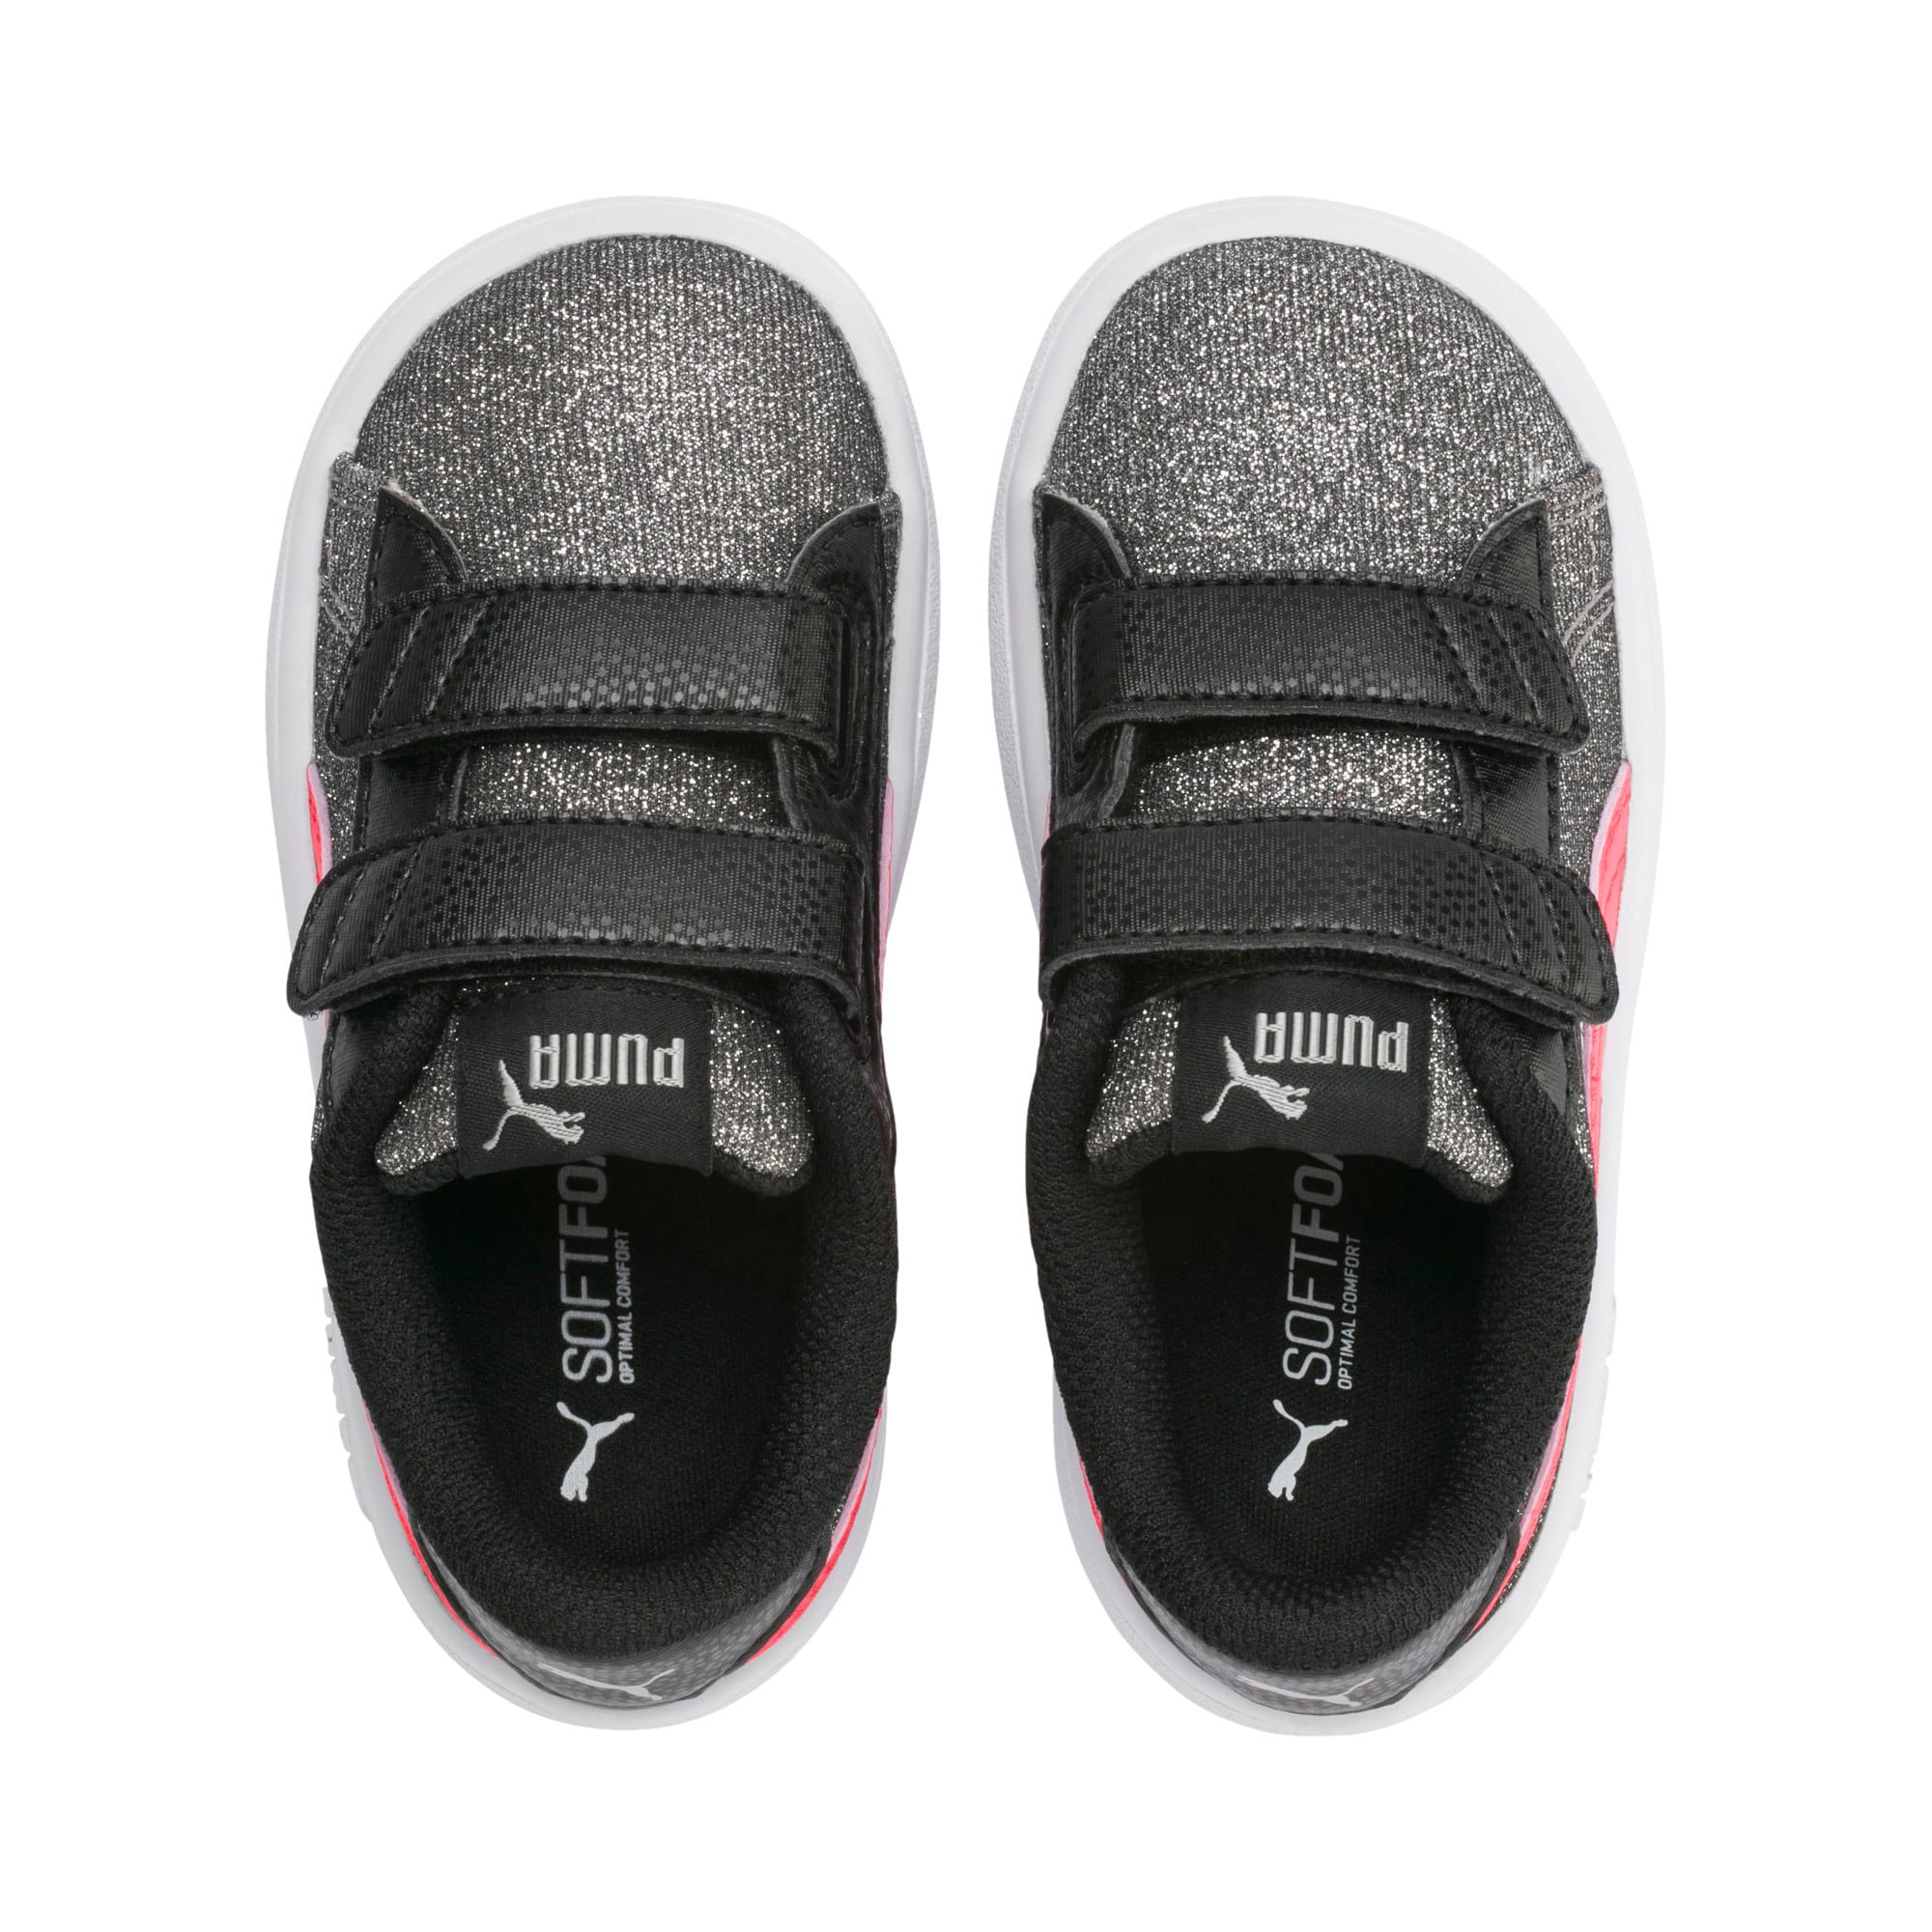 Thumbnail 6 of PUMA Smash v2 Glitz Glam Baby Girls' Trainers, Puma Black-Calypso Coral, medium